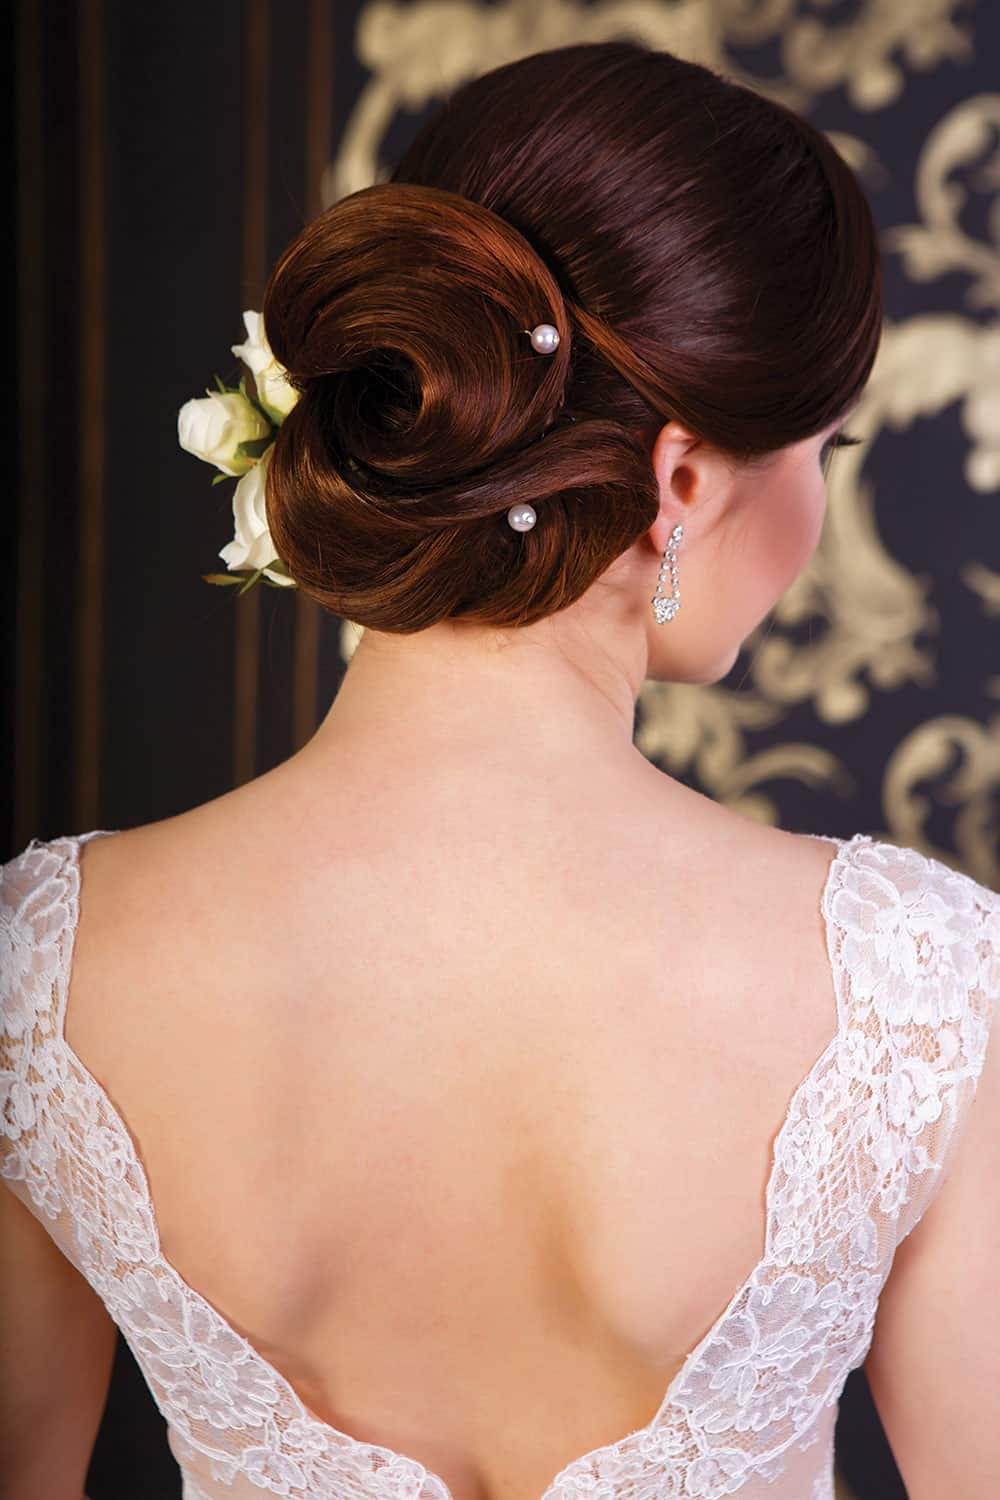 Spring Bridal hair up-do style with flower and woven pearls.